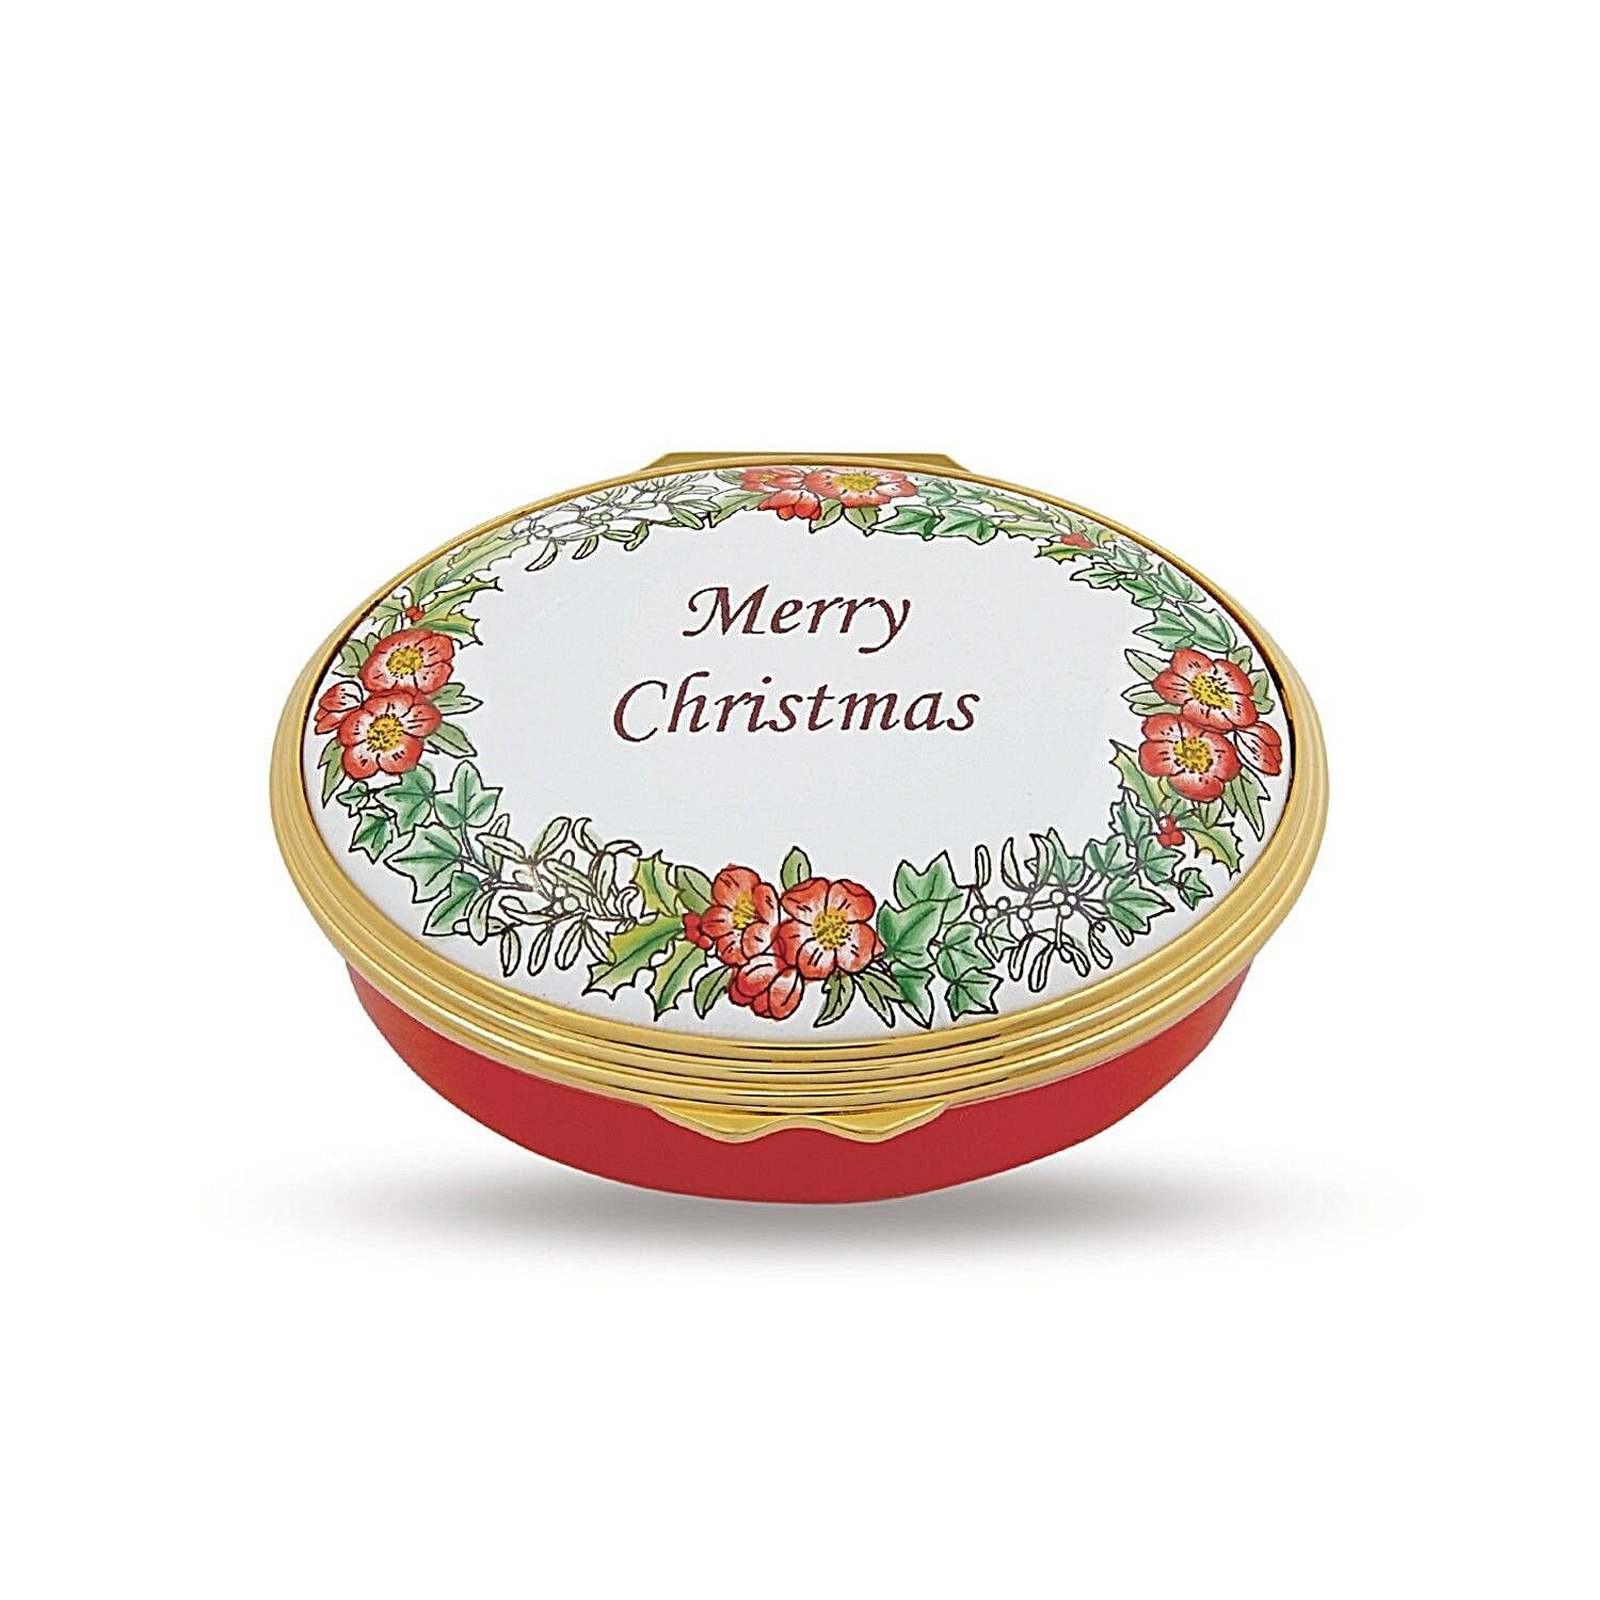 Merry Christmas Enamel Box by Halcyon Days